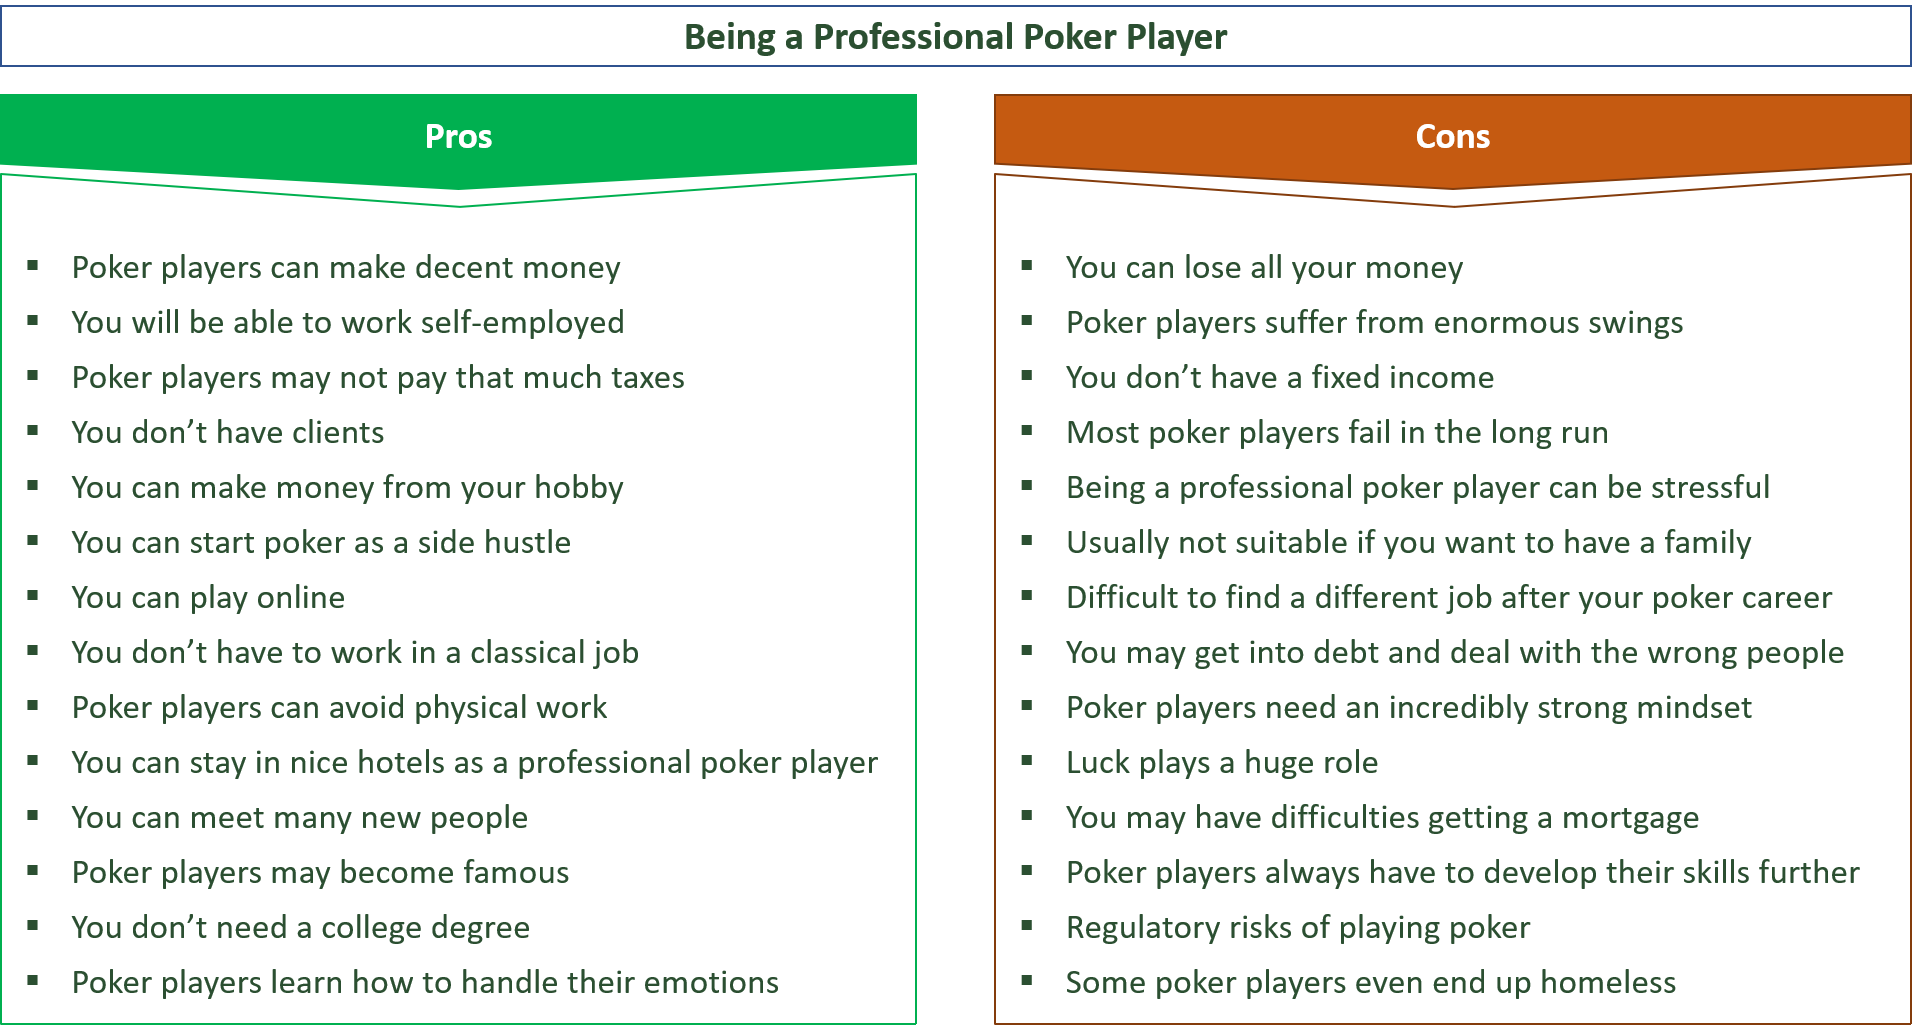 advantages and disadvantages of being a poker player